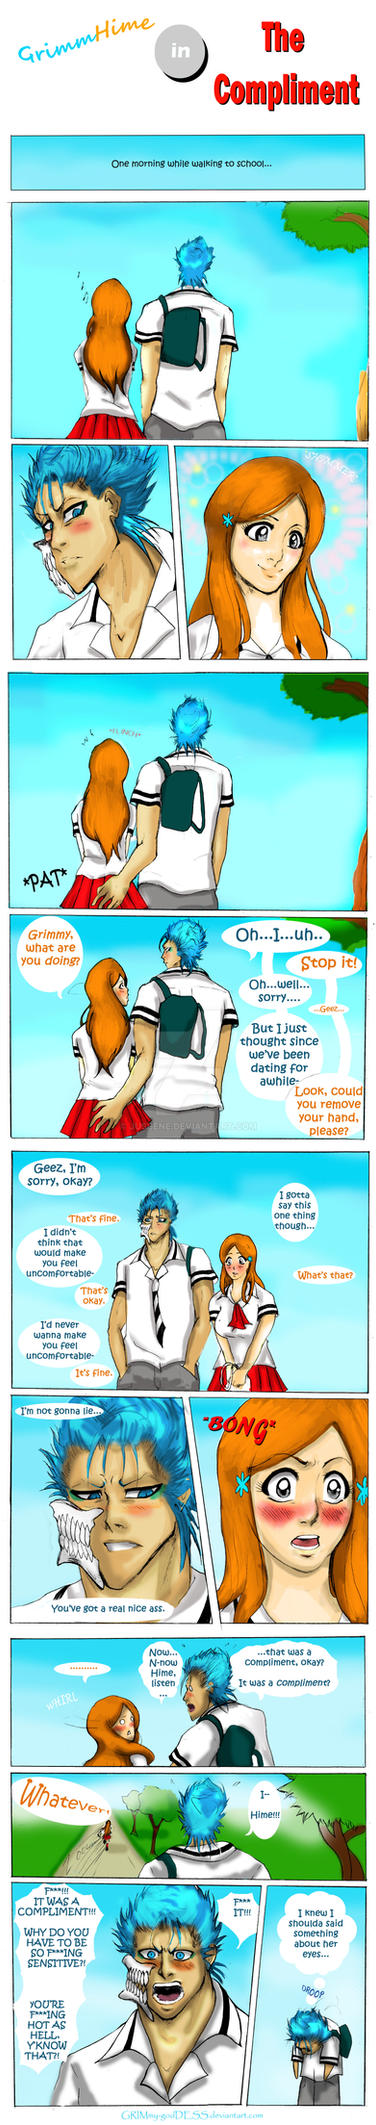 Short Comic: The Compliment by Jusbene